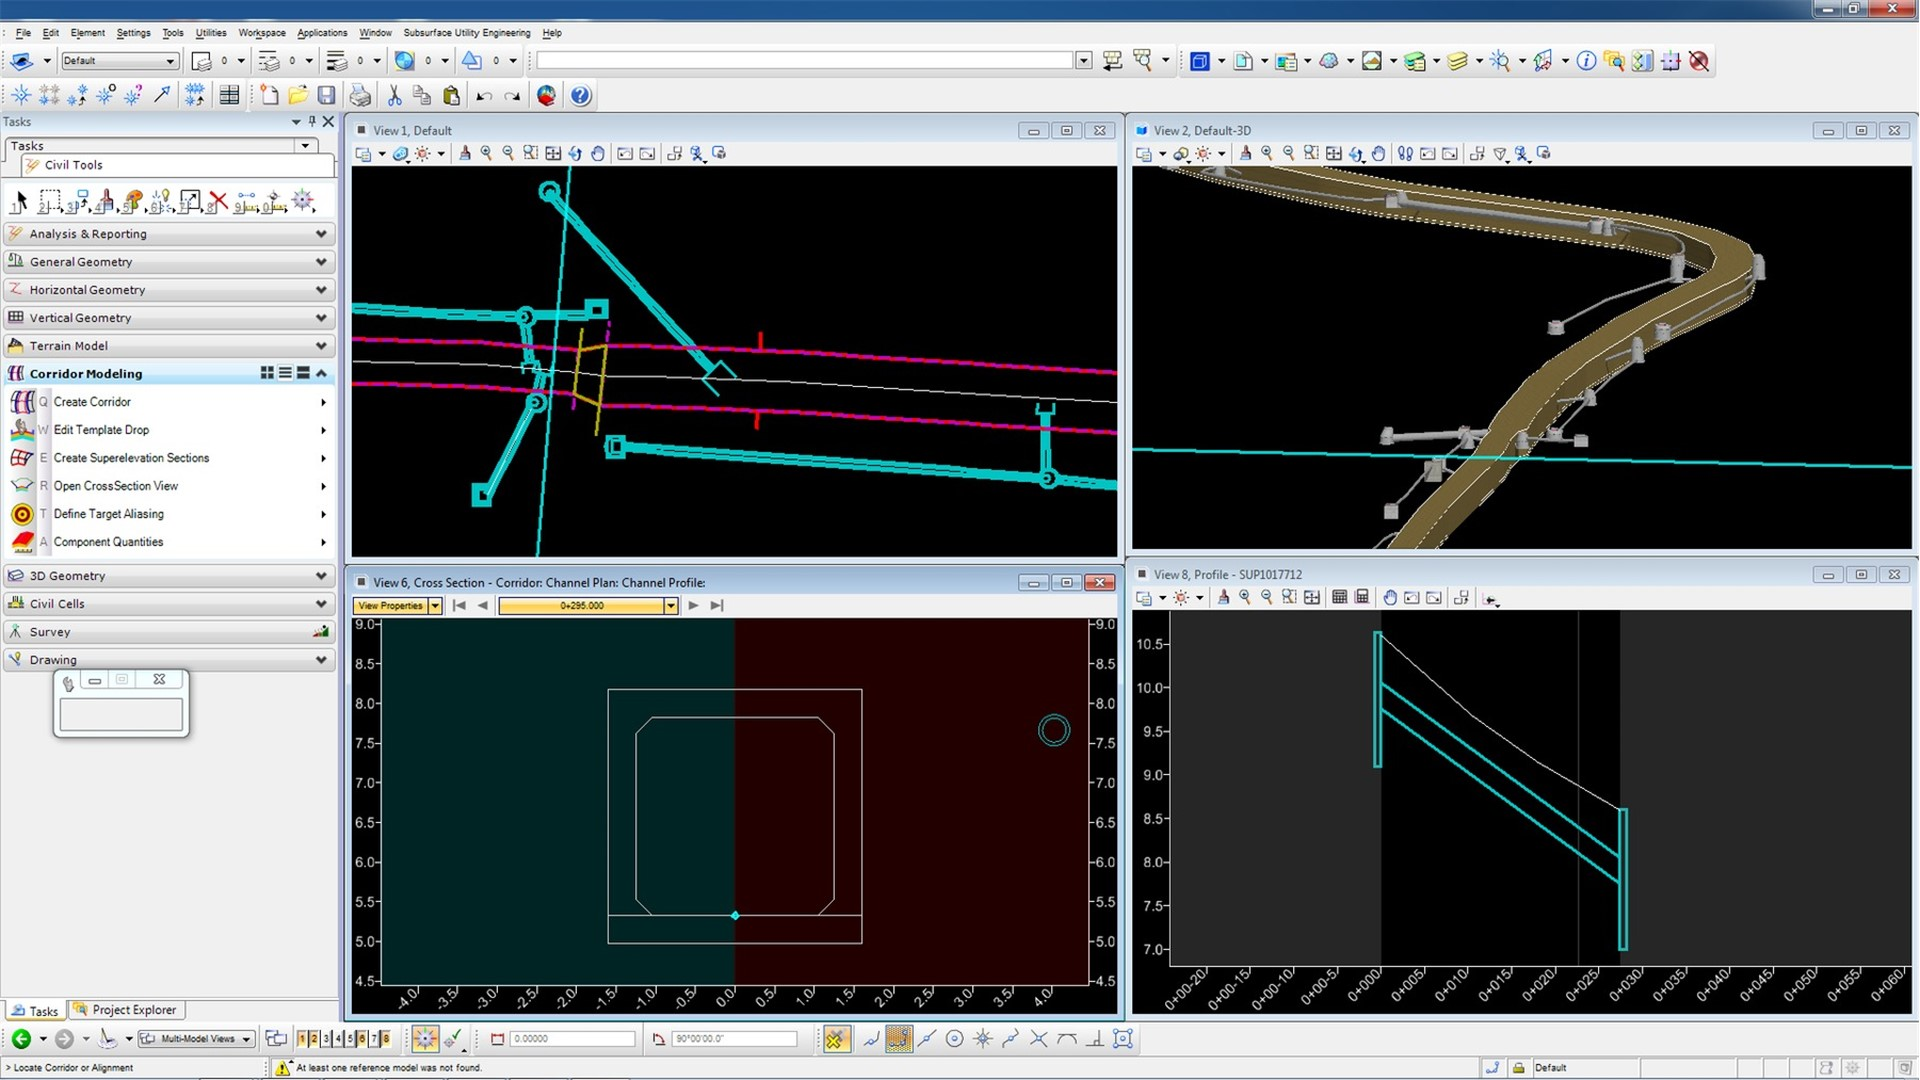 Model analyze and design complete stormwater and sanitary sewer networks v2